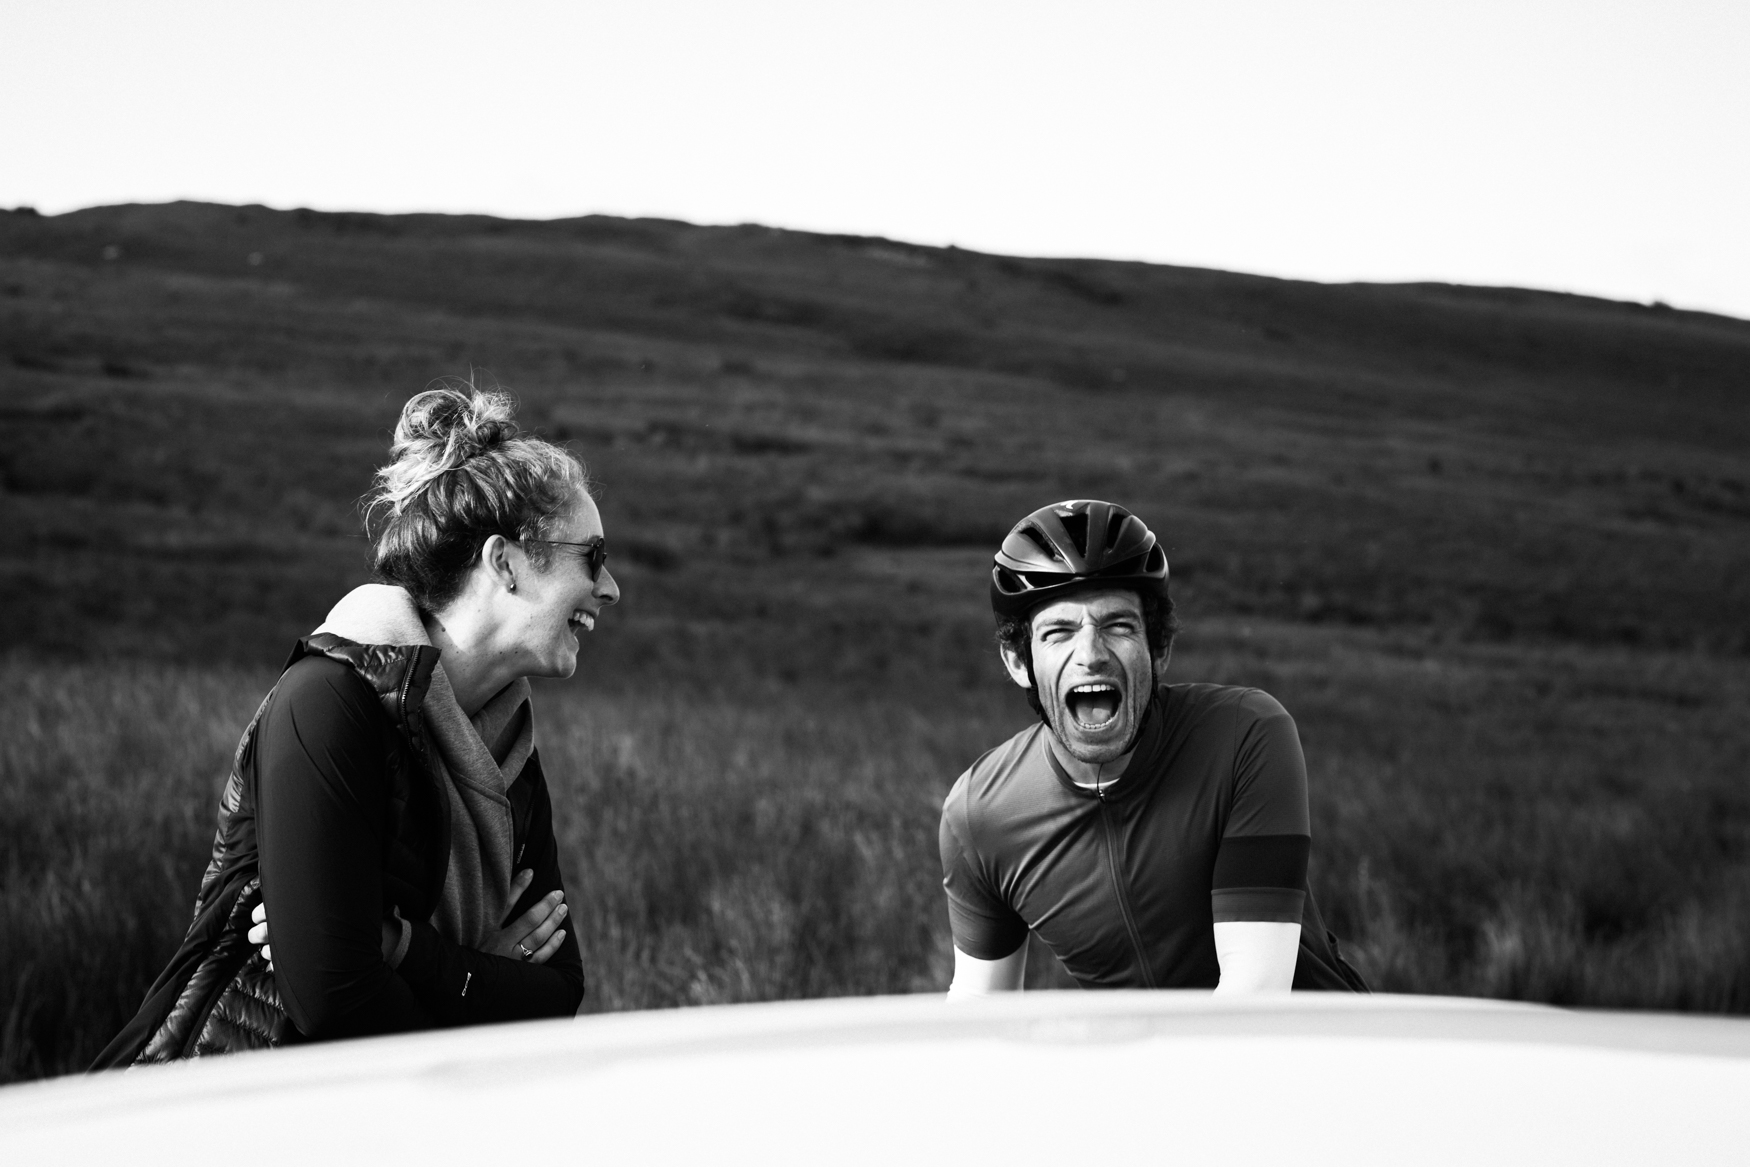 Alex-Sedgmond-Photography-Cardiff-RAS-BreconBeacons-Cycling-Photography-44.JPG